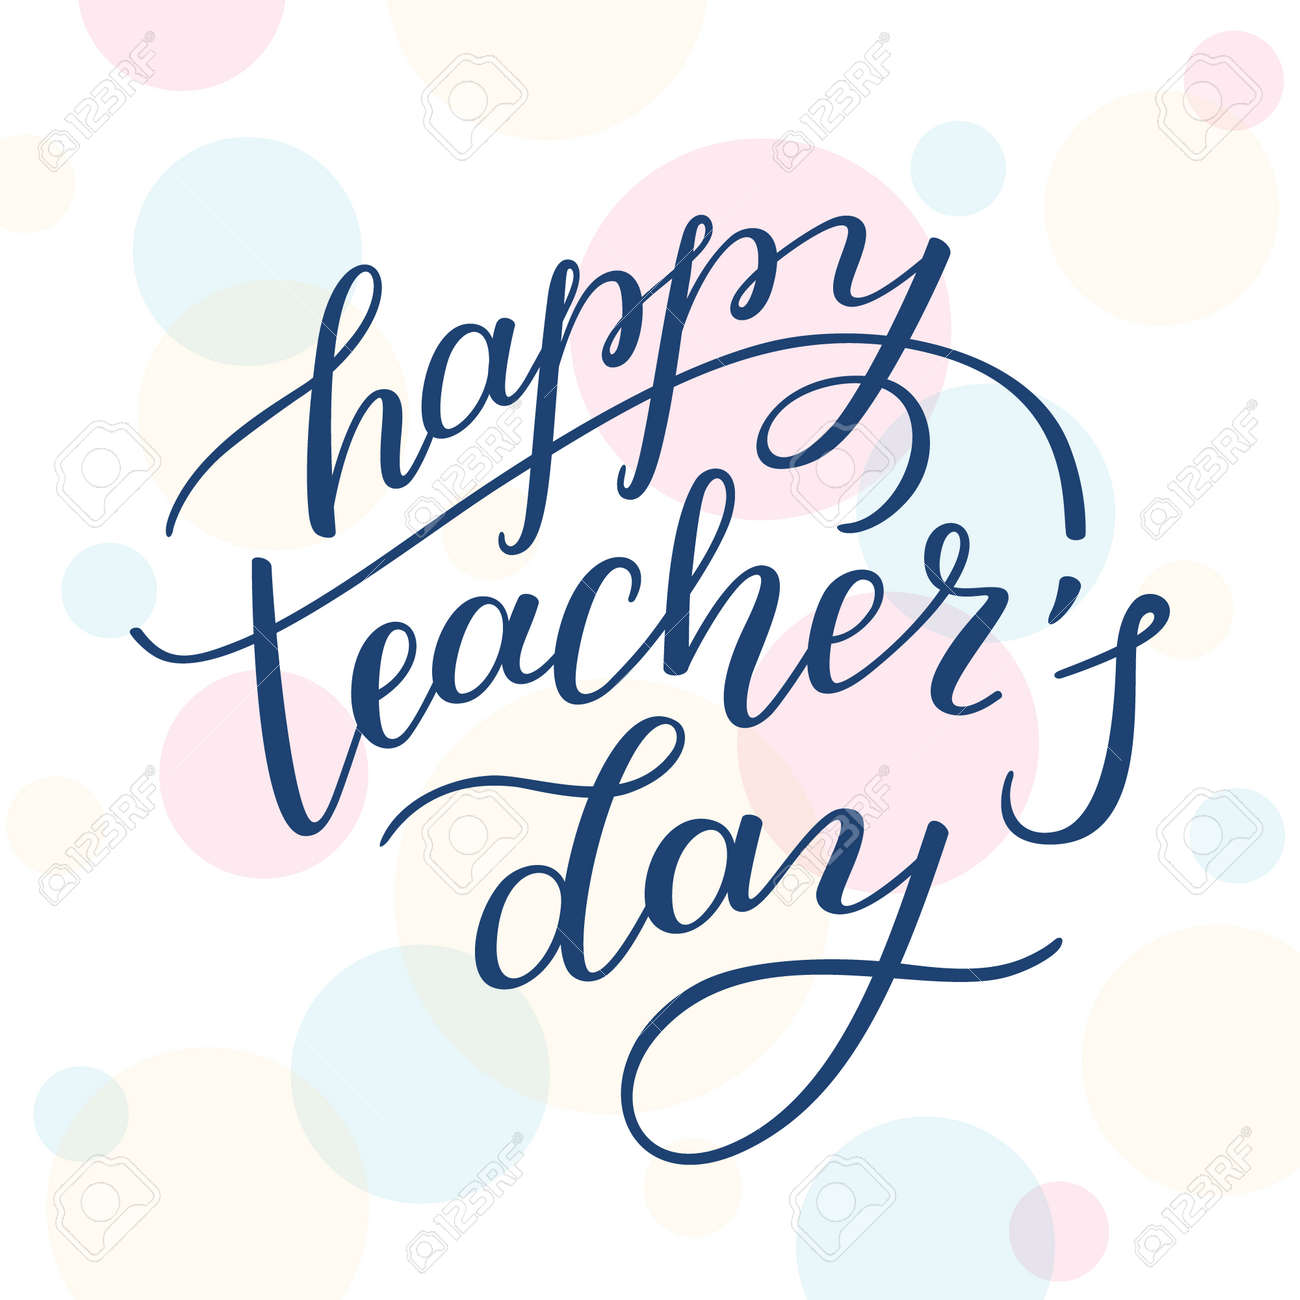 Happy teachers day hand lettering on colored background template happy teachers day hand lettering on colored background template for greeting cards m4hsunfo